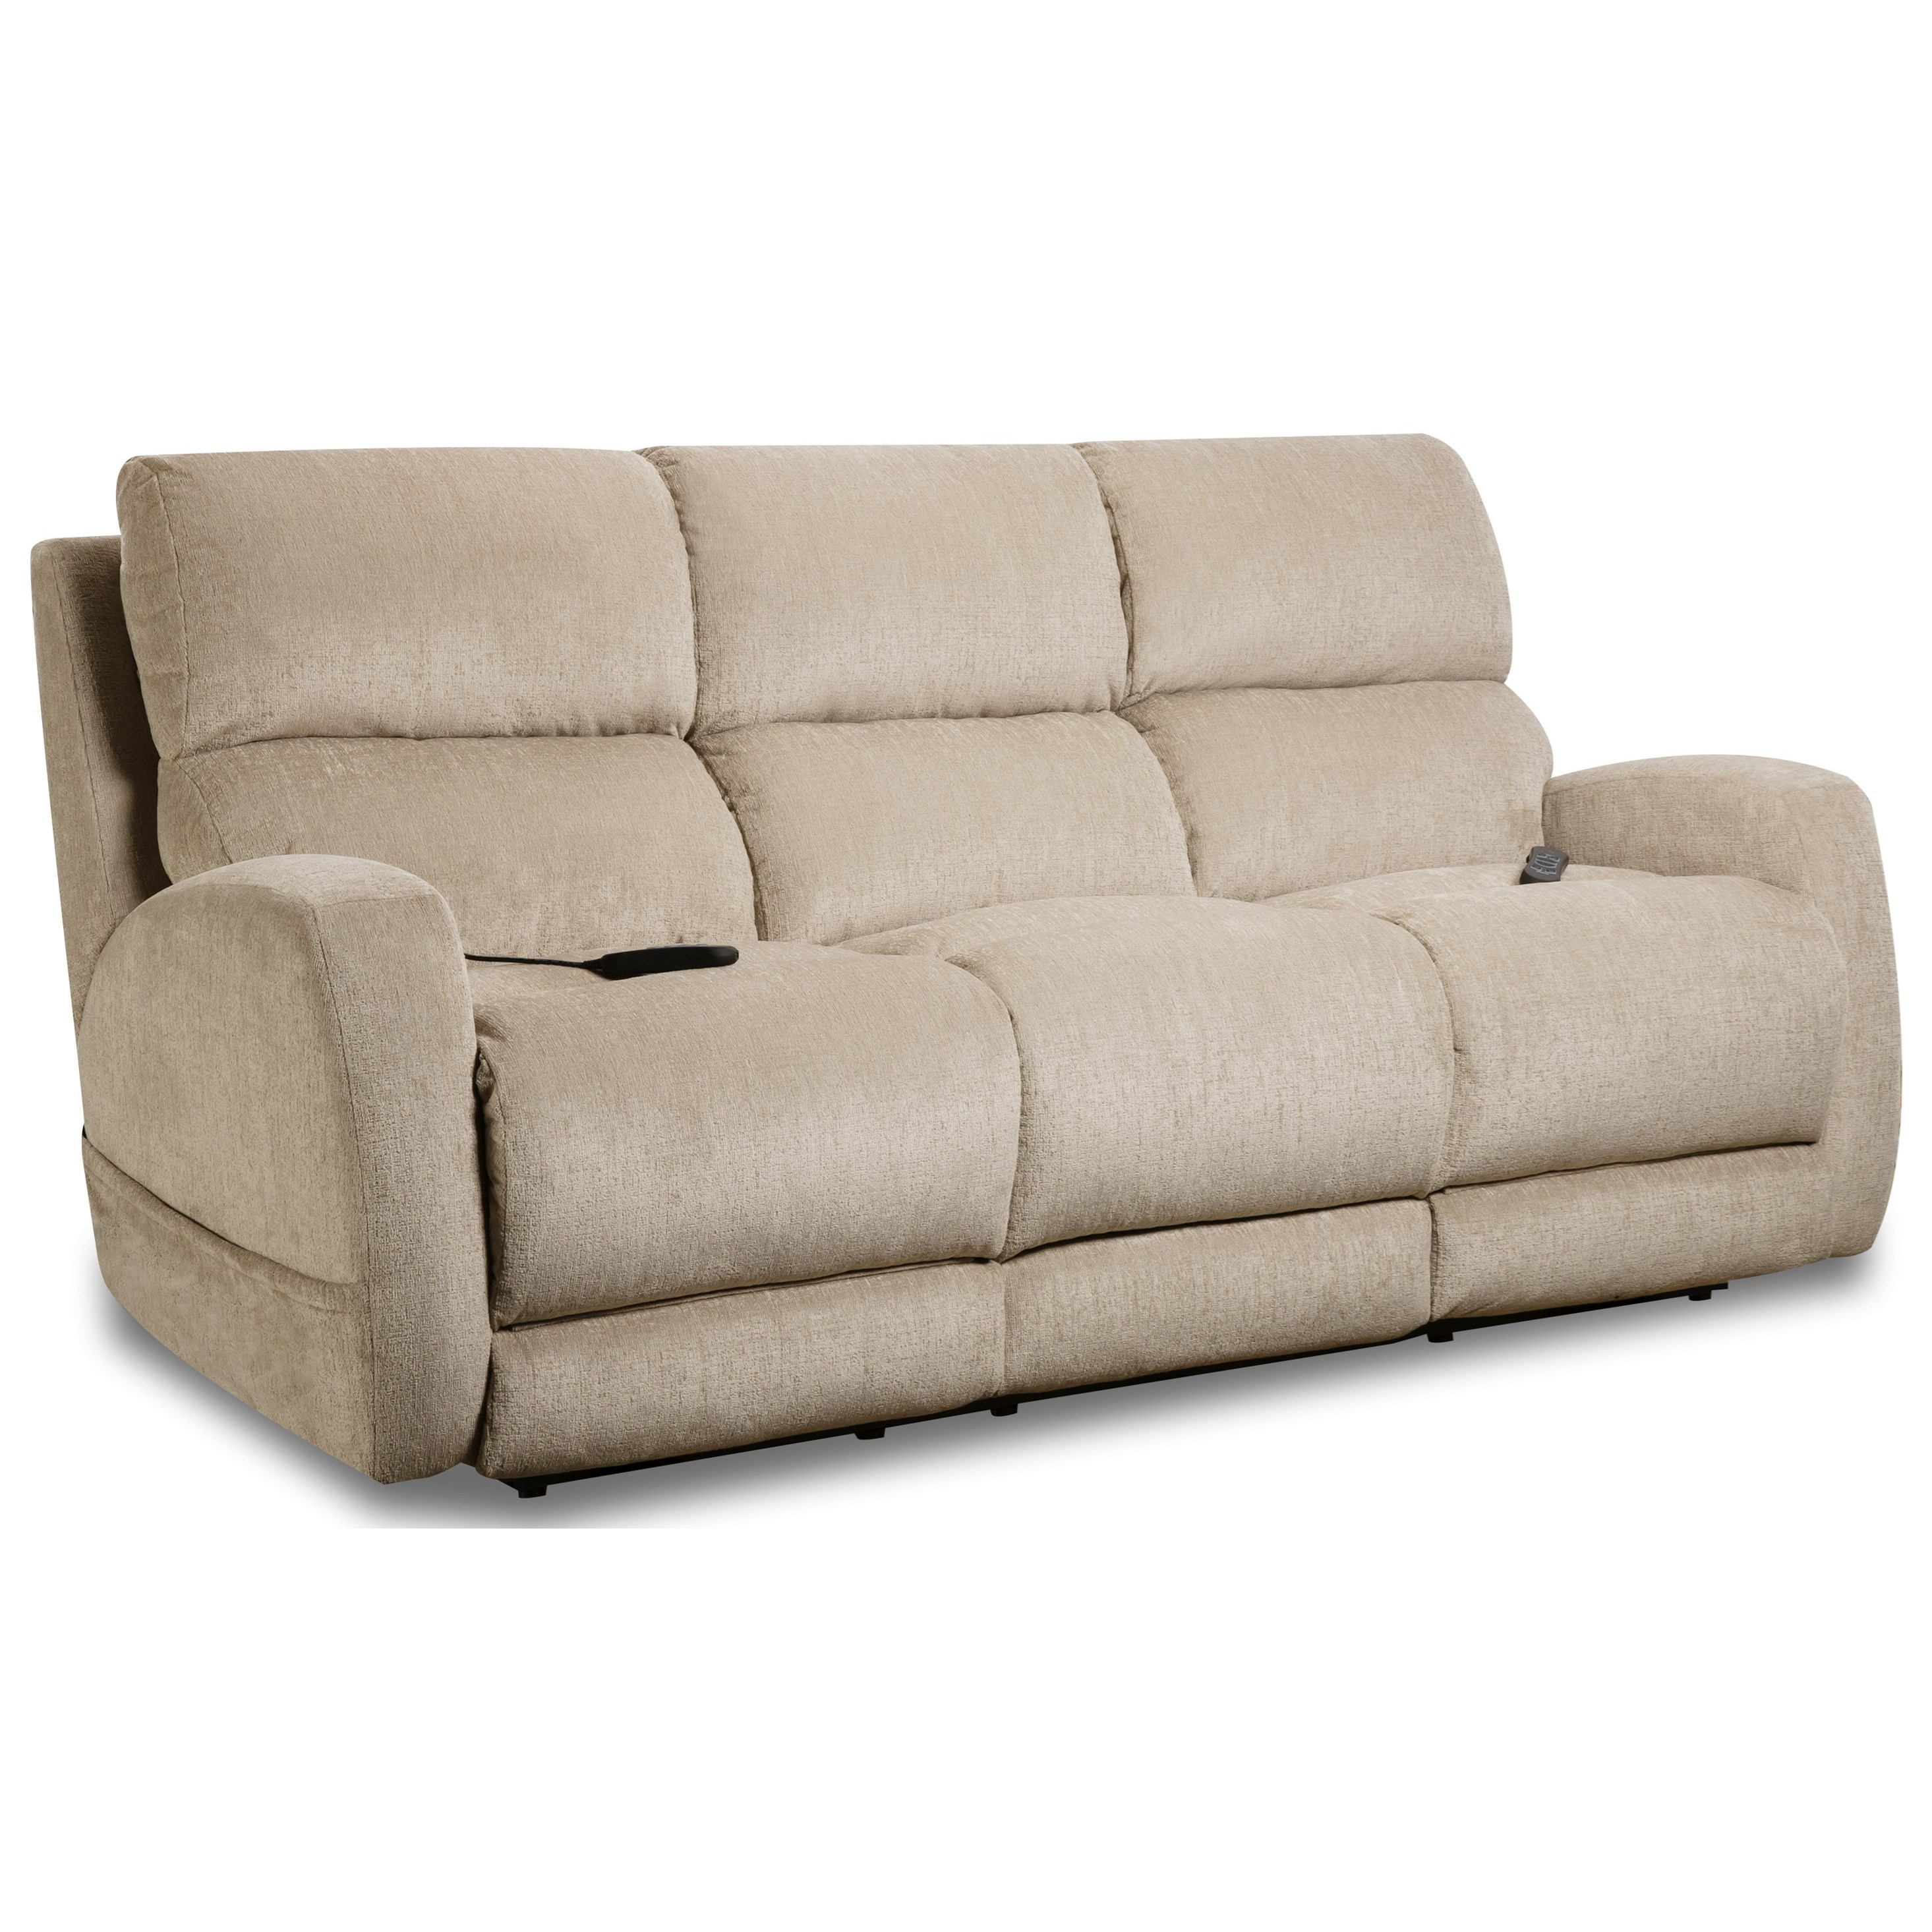 Noah Double Reclining Power Sofa by Comfort Living at Rotmans